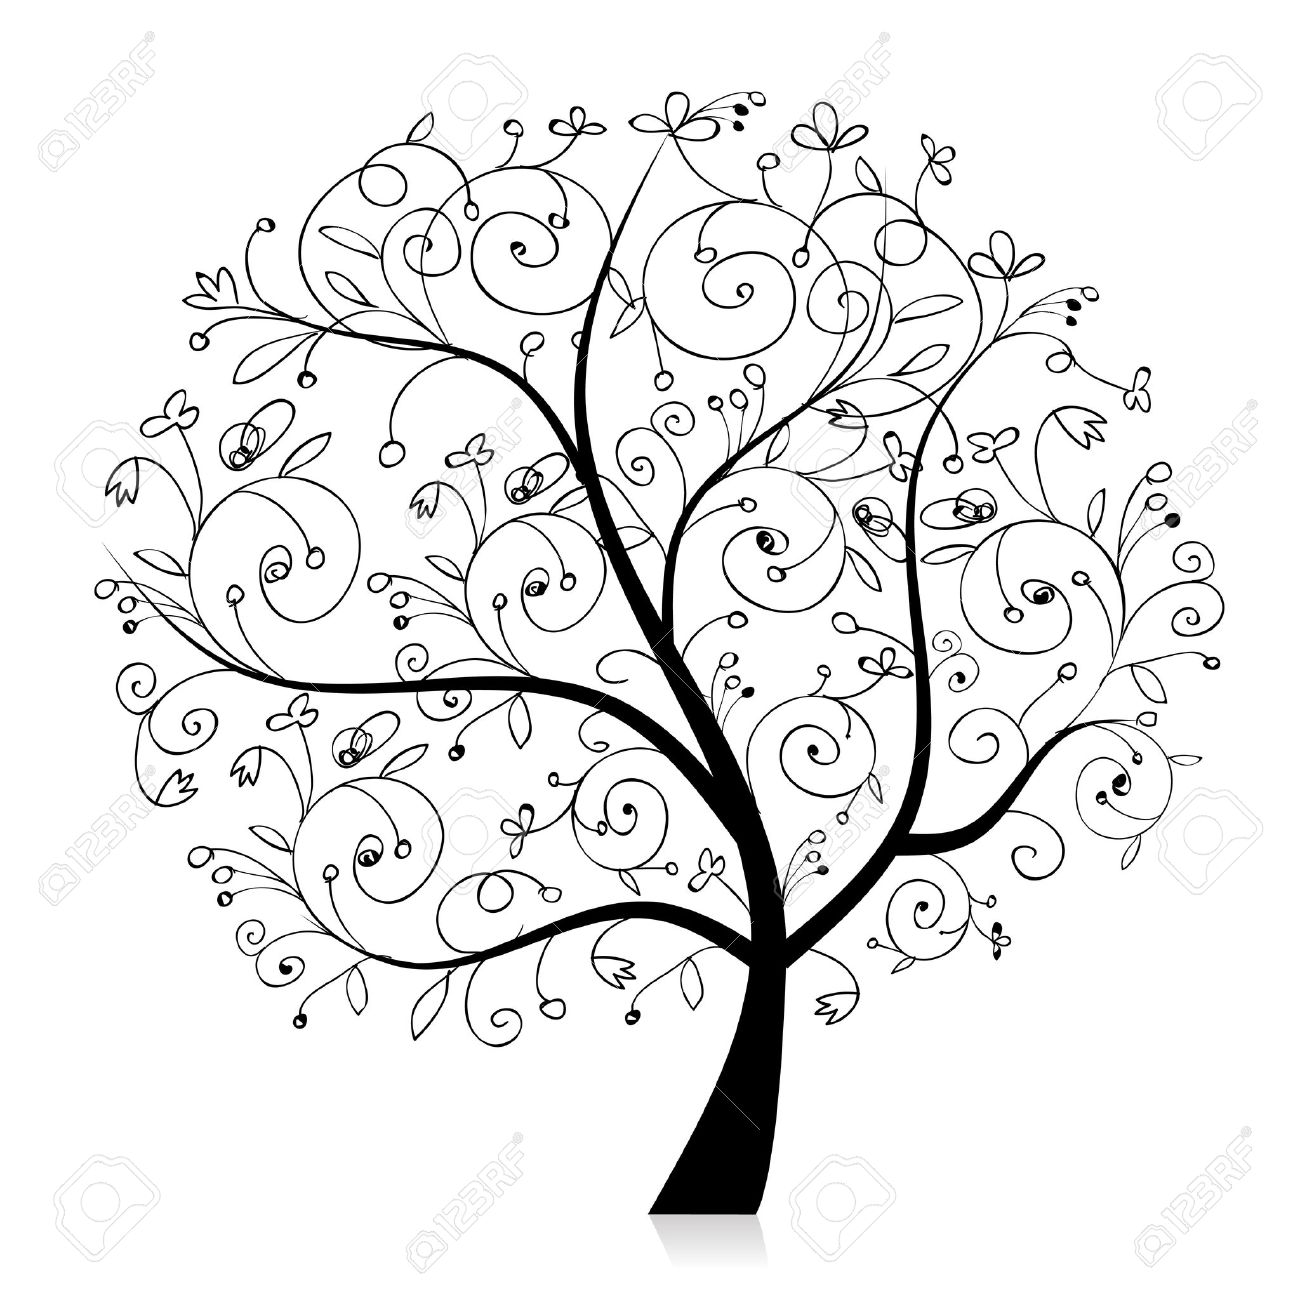 Art Tree Beautiful Black Silhouette For Your Design Royalty Free